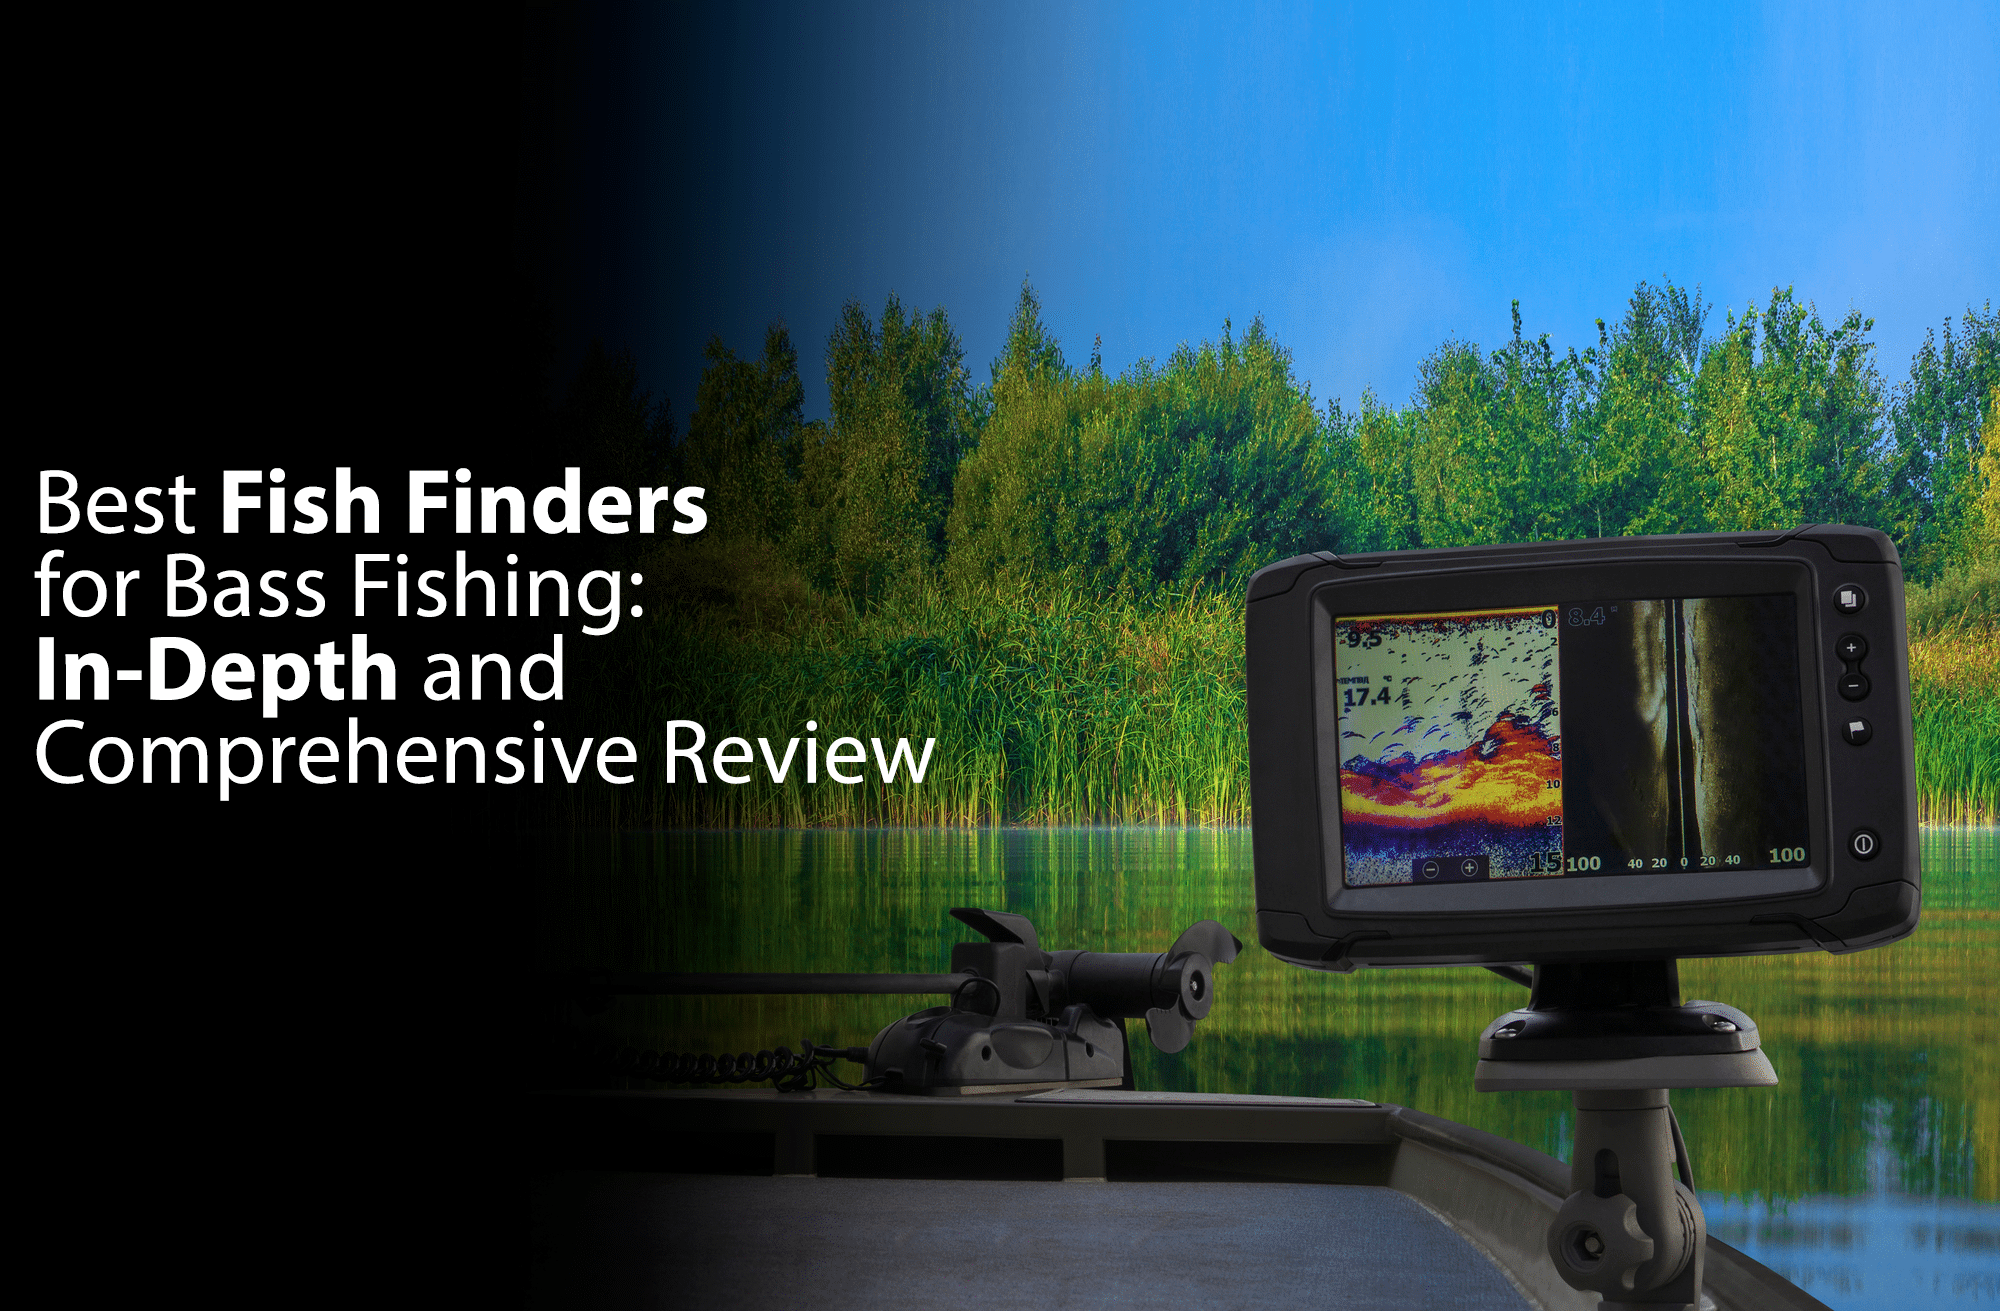 Best Fish Finders for Bass Fishing: In-Depth and Comprehensive Review